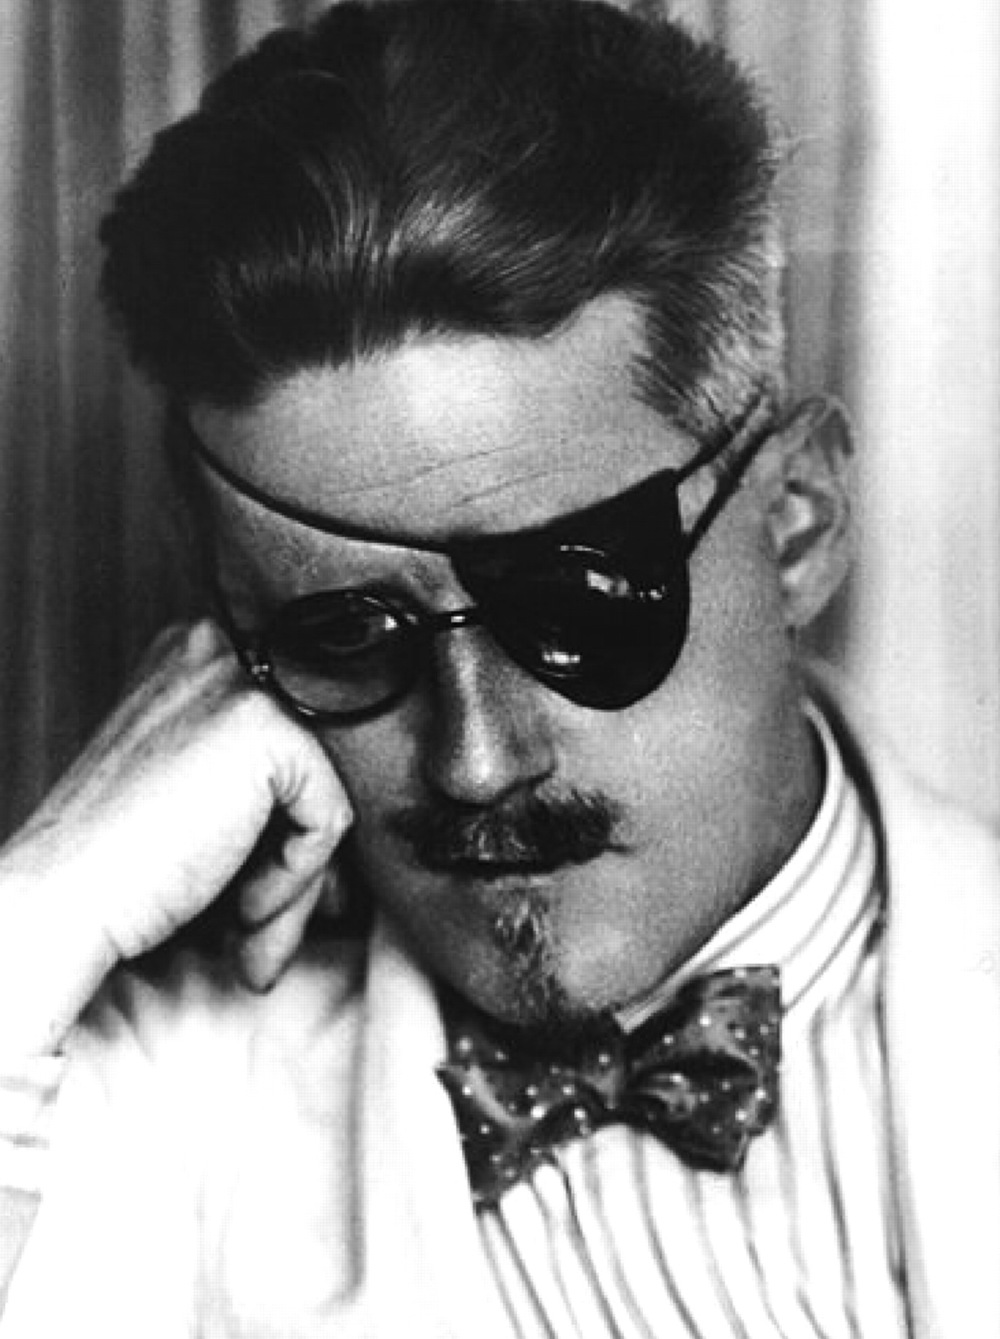 Posts about James Joyce are to be illustrated only with this picture.